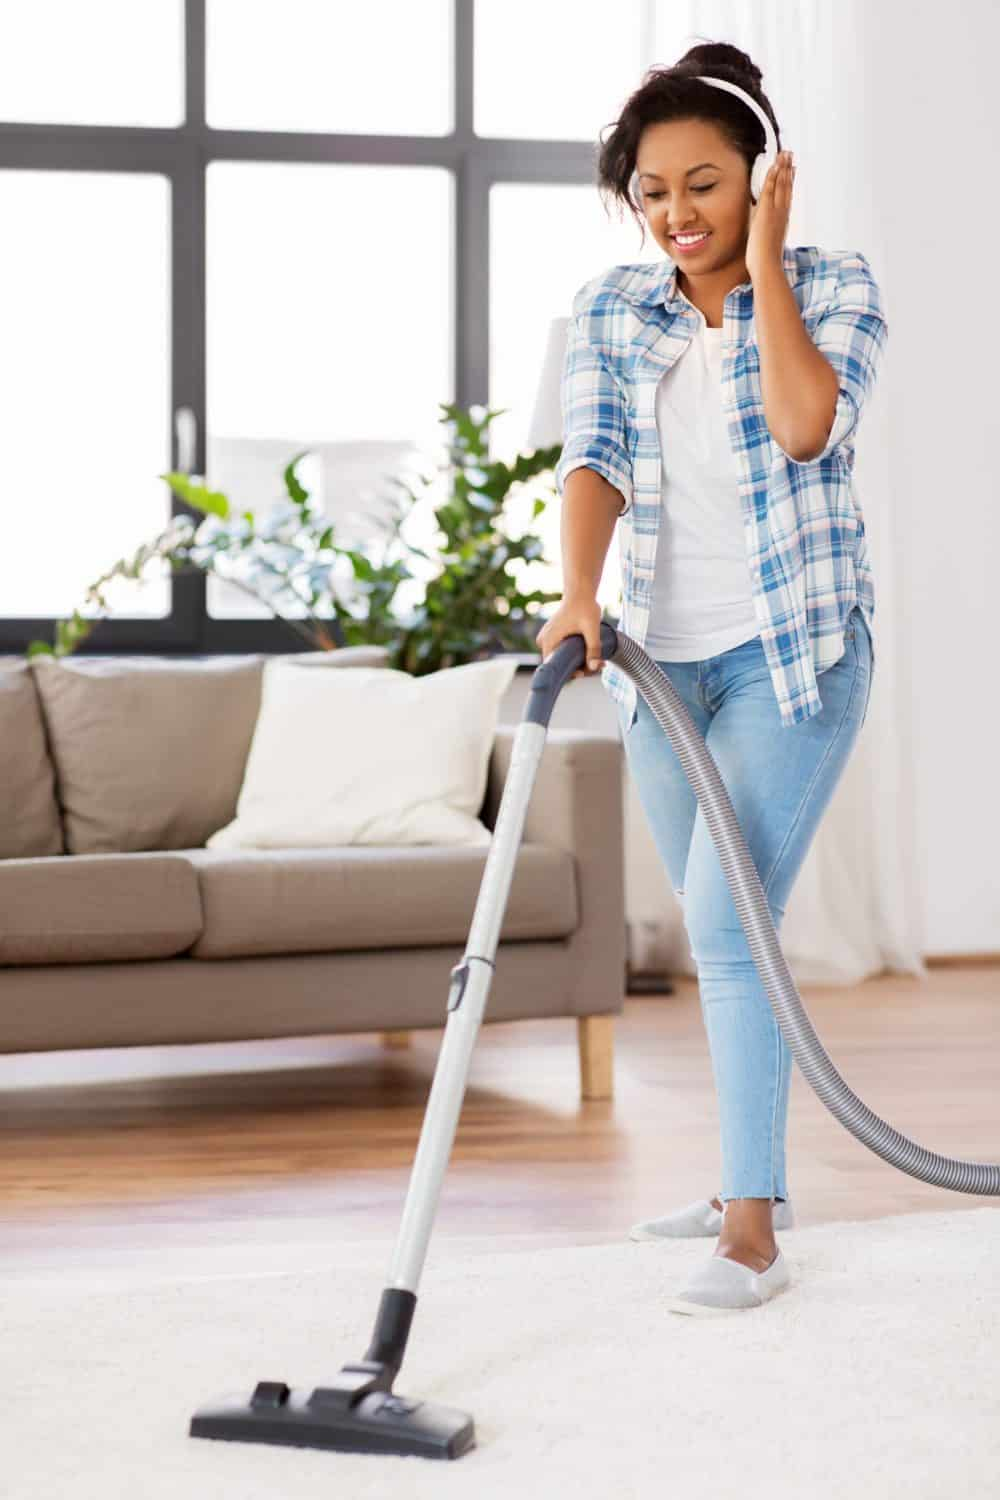 full-time mom vacuuming with headphones